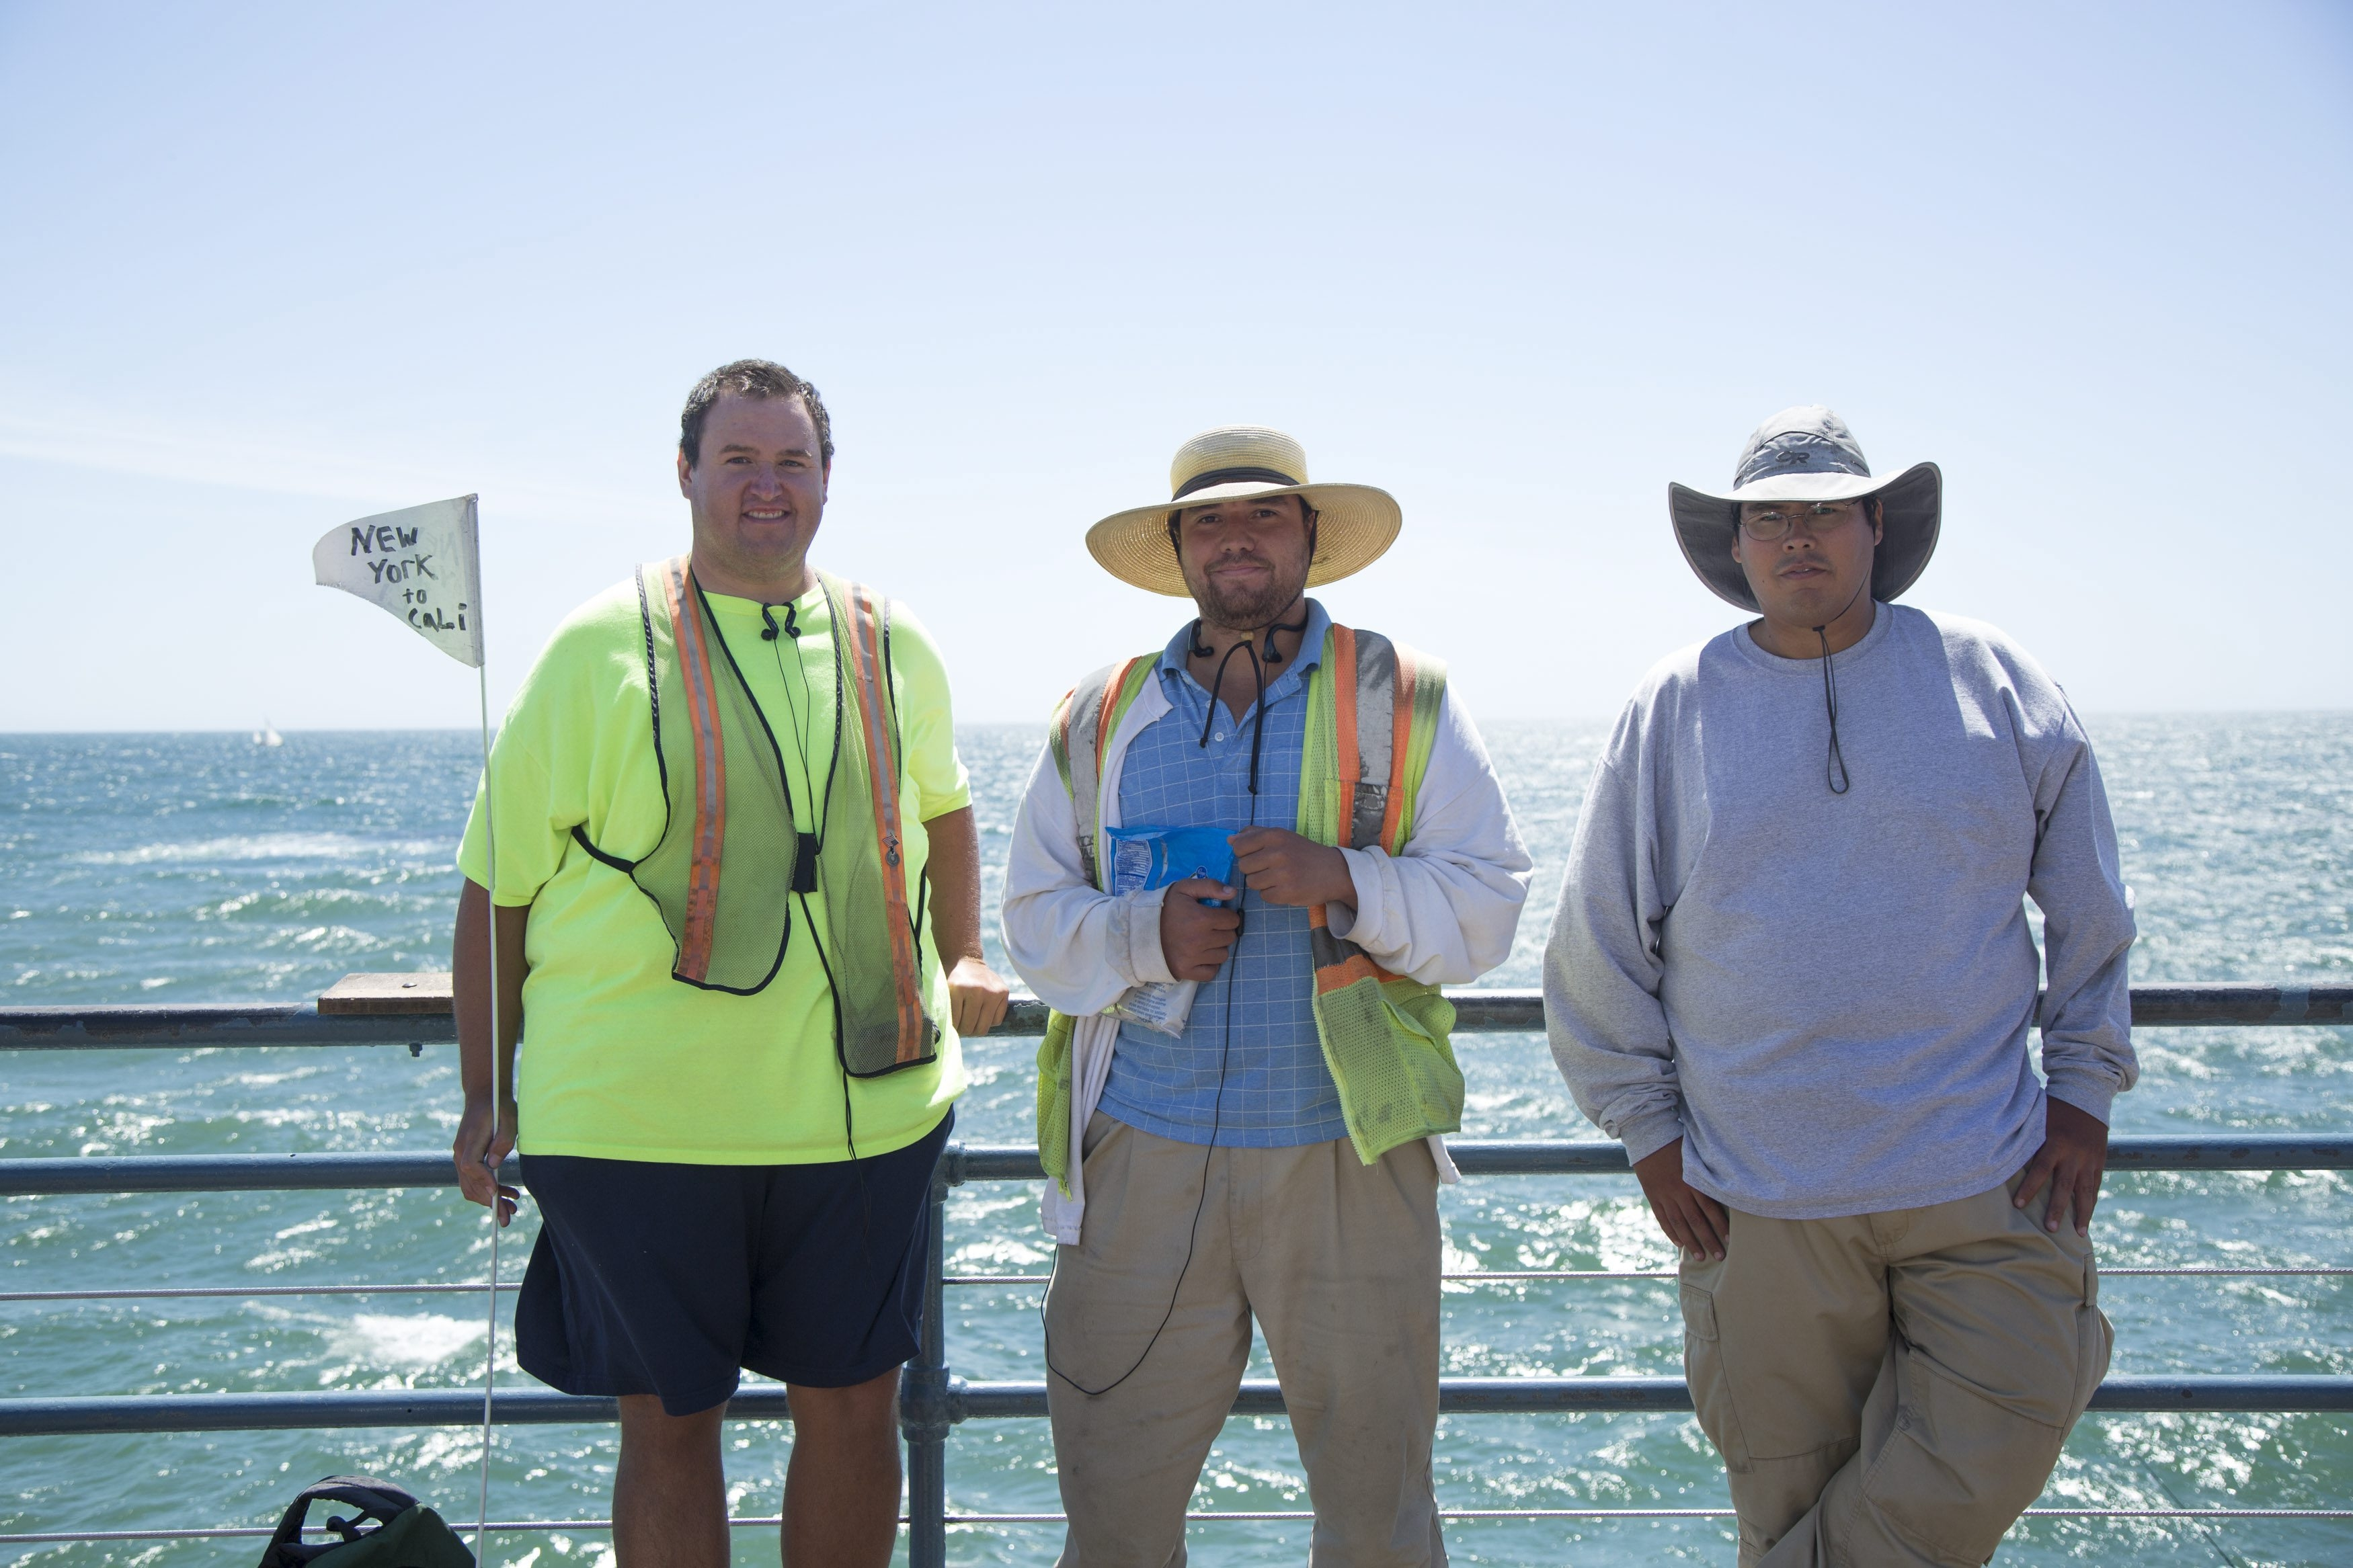 From left, Jason Rogers, Joe Cooke and Chris Cooke stand on the Santa Monica Pier overlooking the Pacific Ocean.